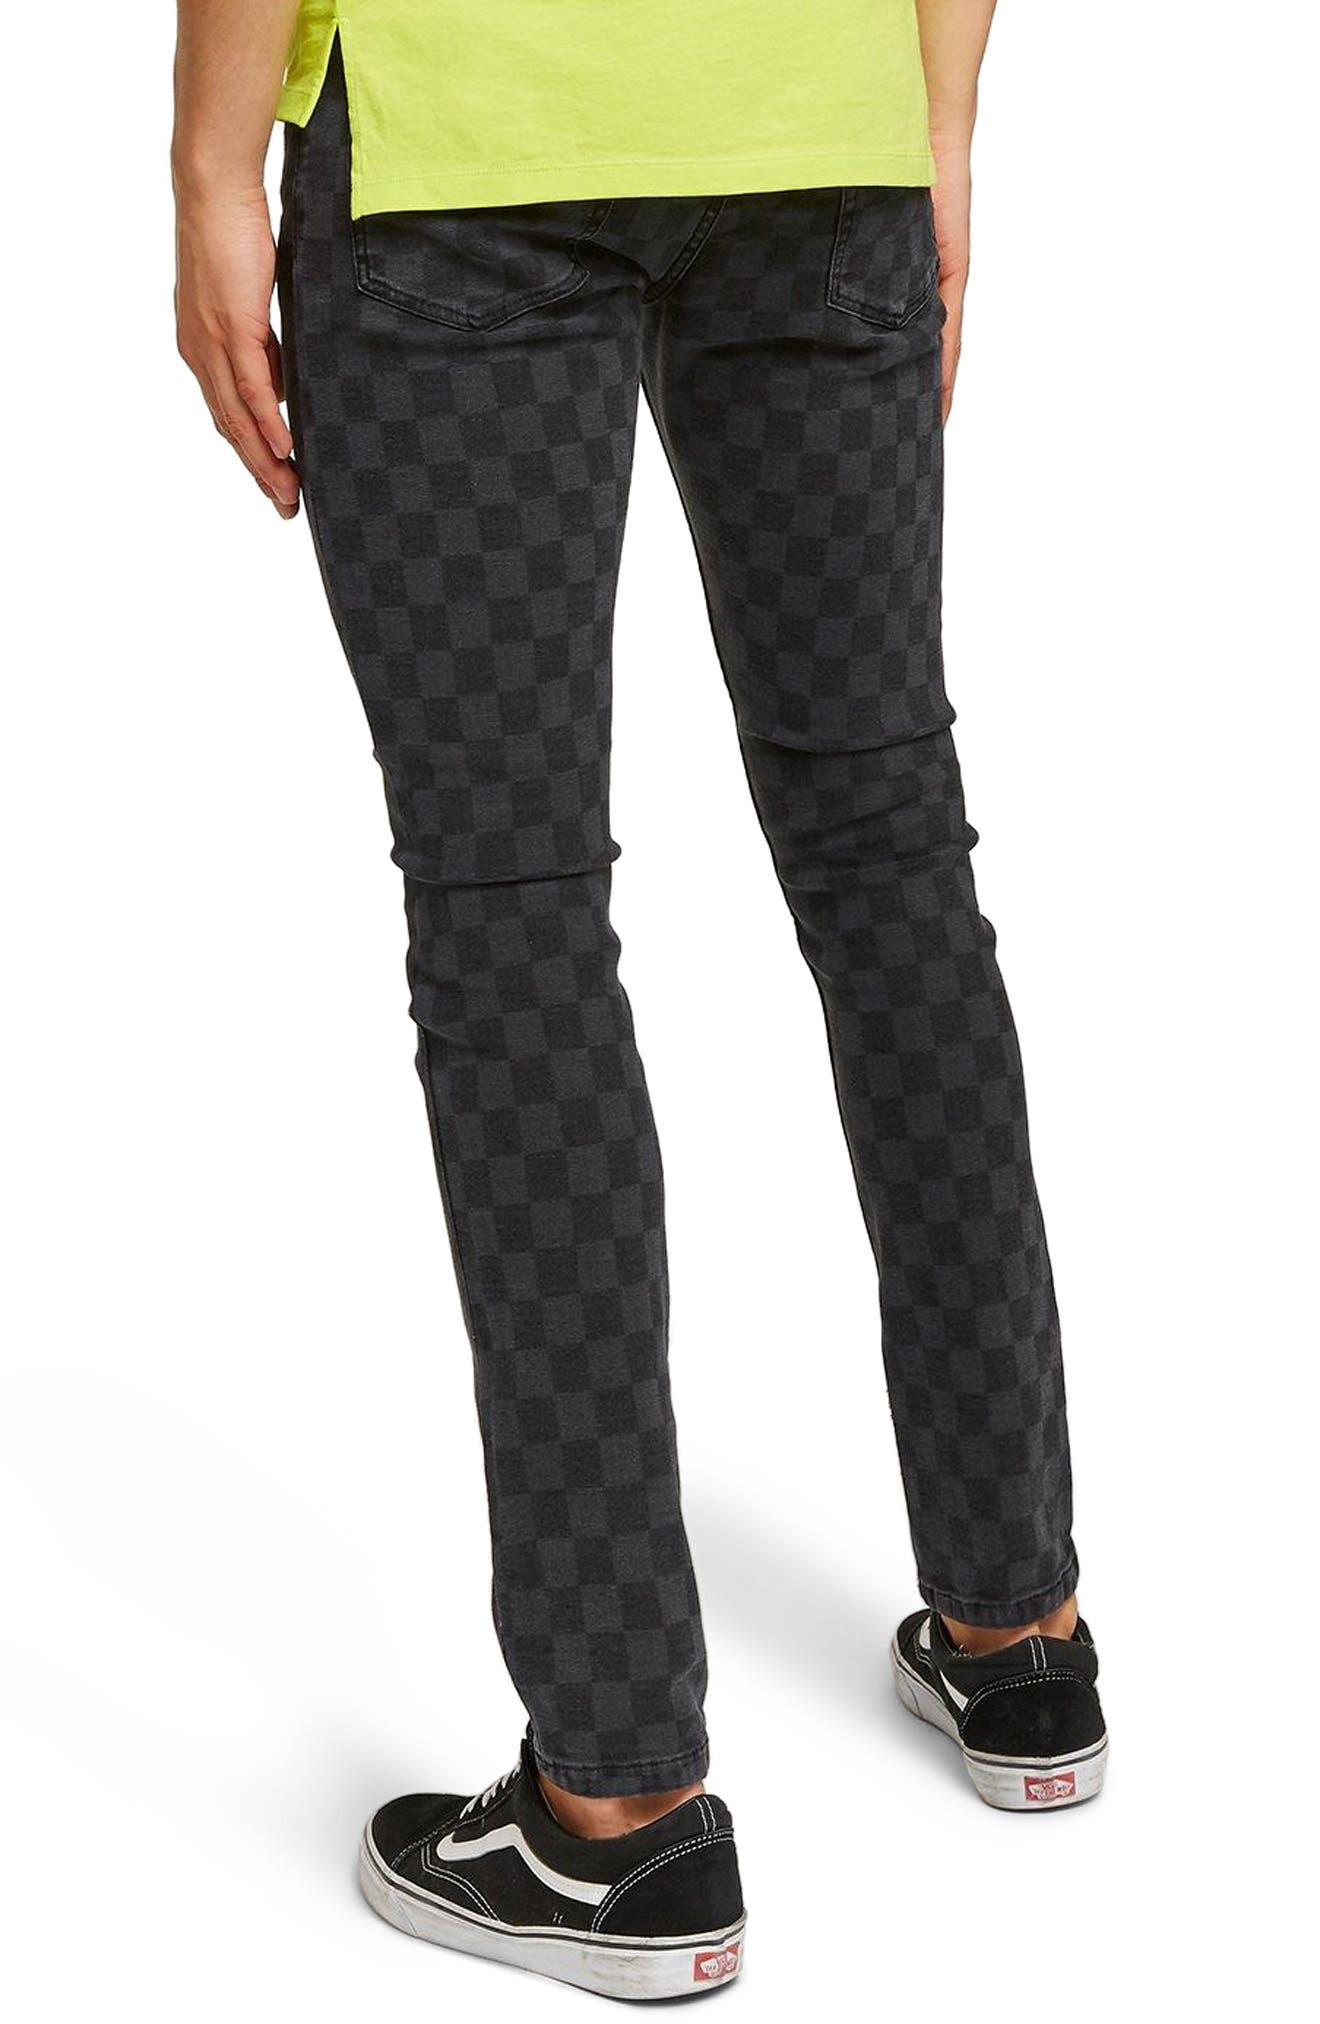 Check Stretch Skinny Fit Pants,                             Alternate thumbnail 2, color,                             BLACK MULTI